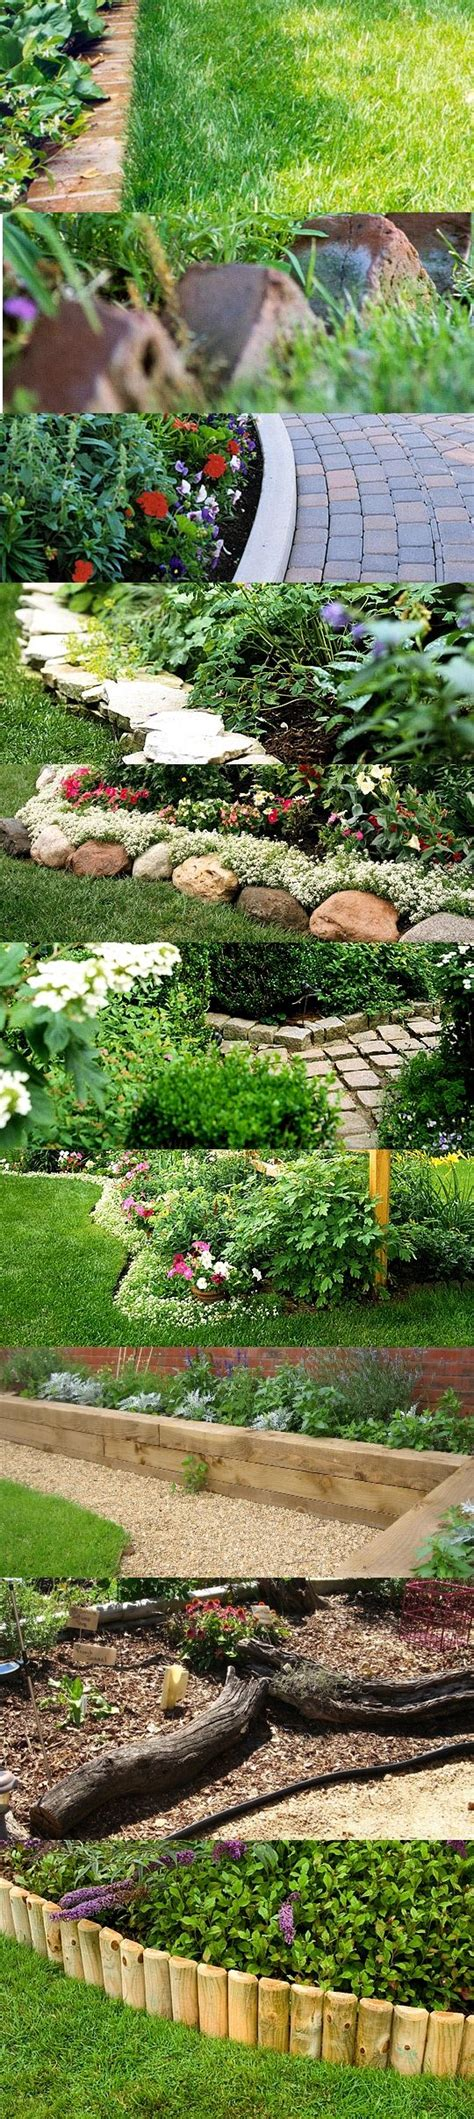 Garden Borders And Edging Ideas Garden Bed Borders Edging Ideas For Vegetable And Flower Gardens